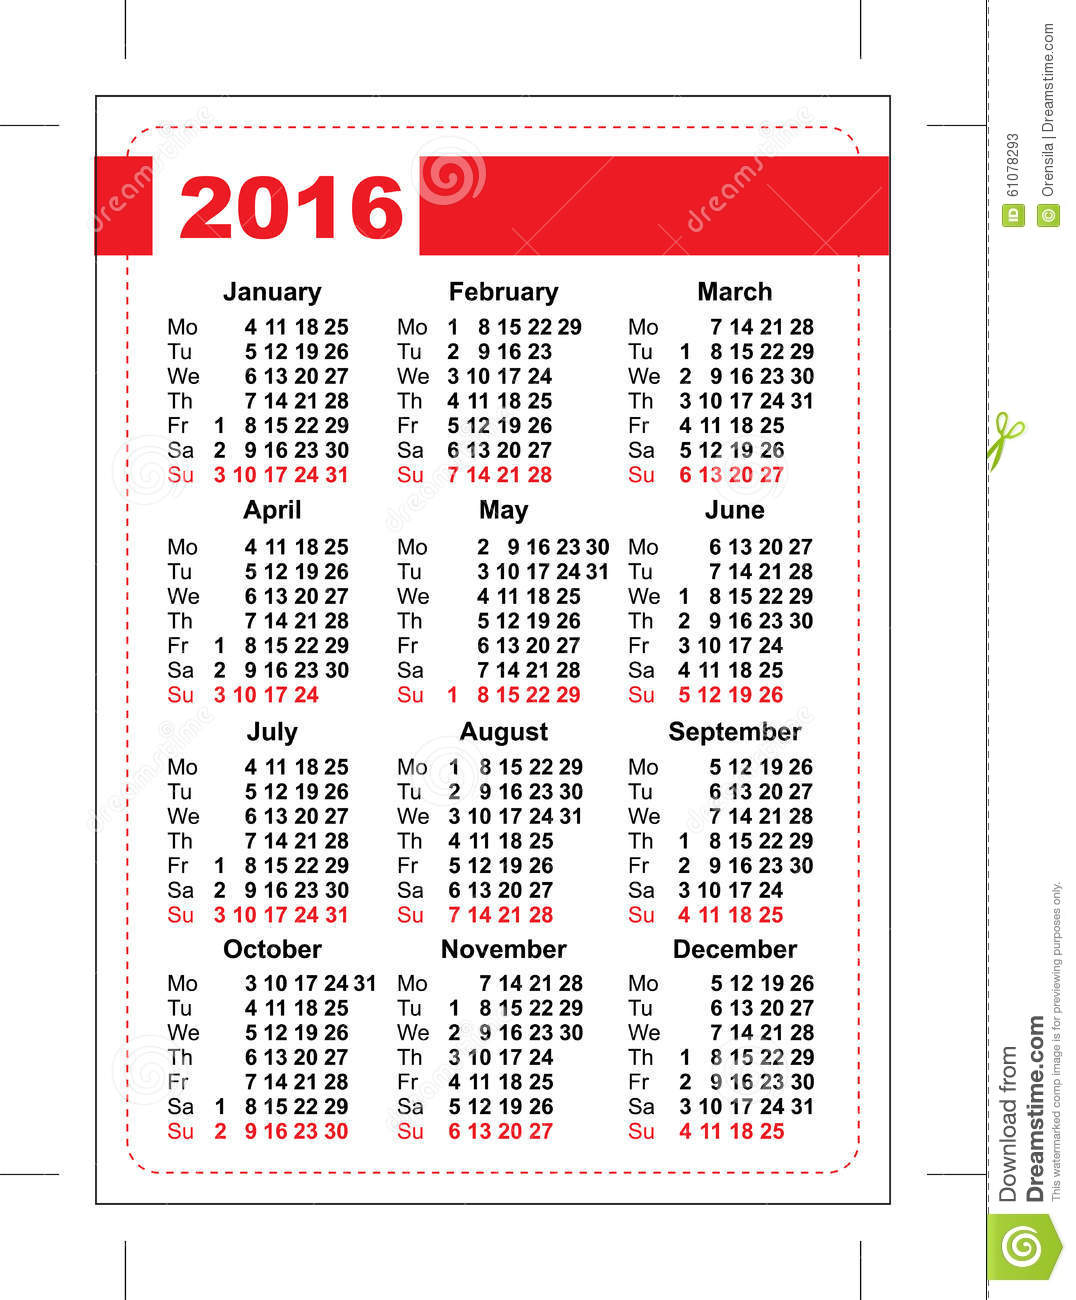 Calendar Days : Pocket calendar template grid vertical orientation